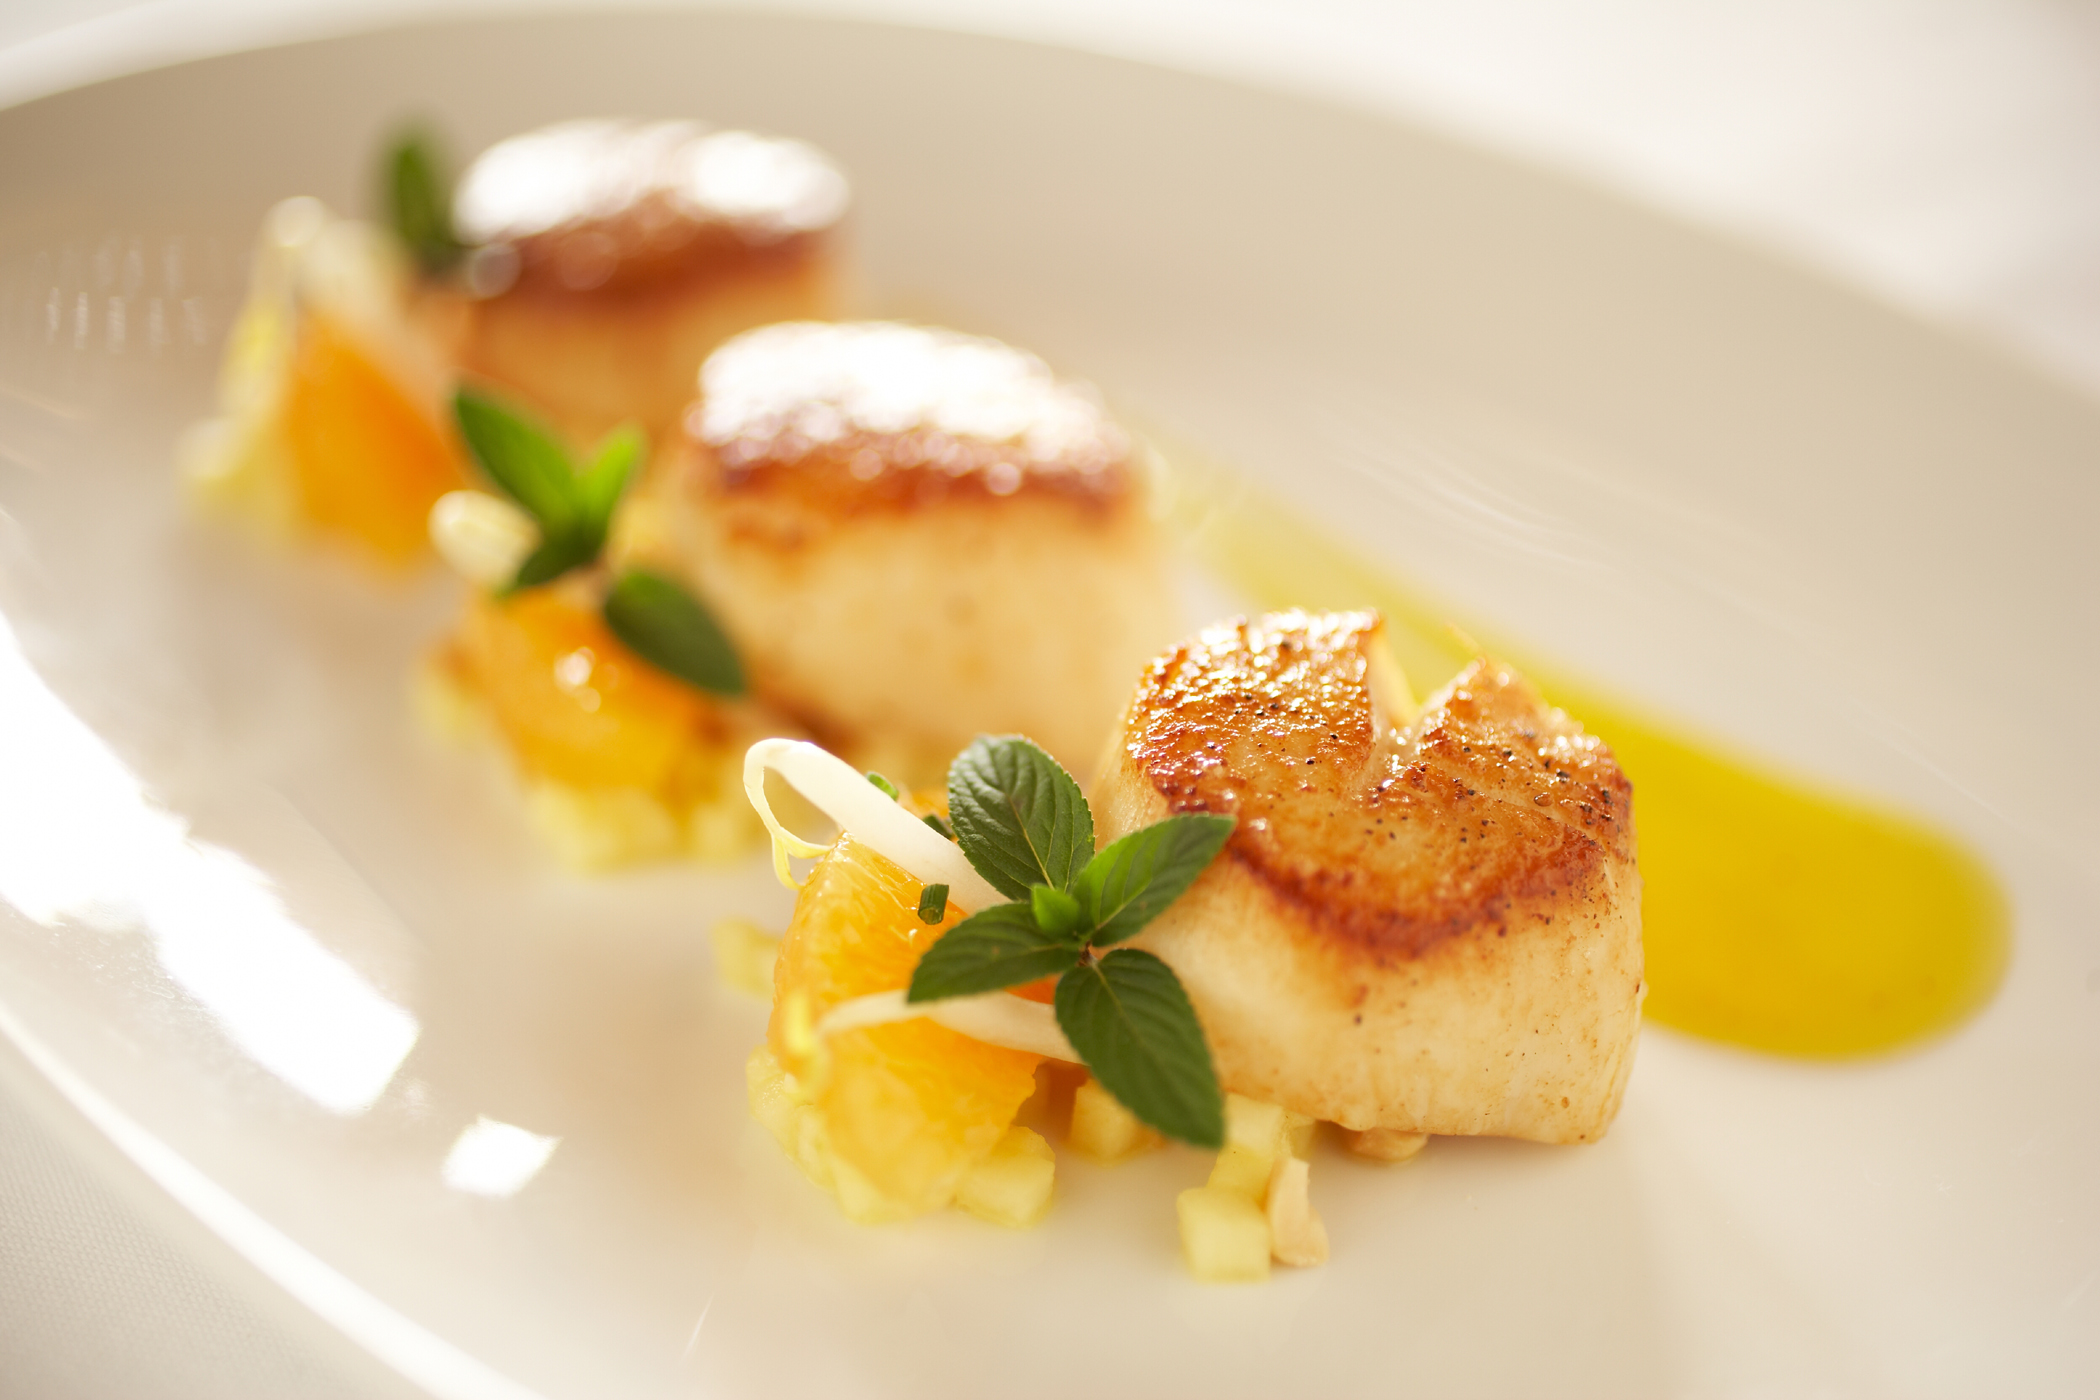 Perfectly Cooked Scallops at Auberge du Soleil Restaurant